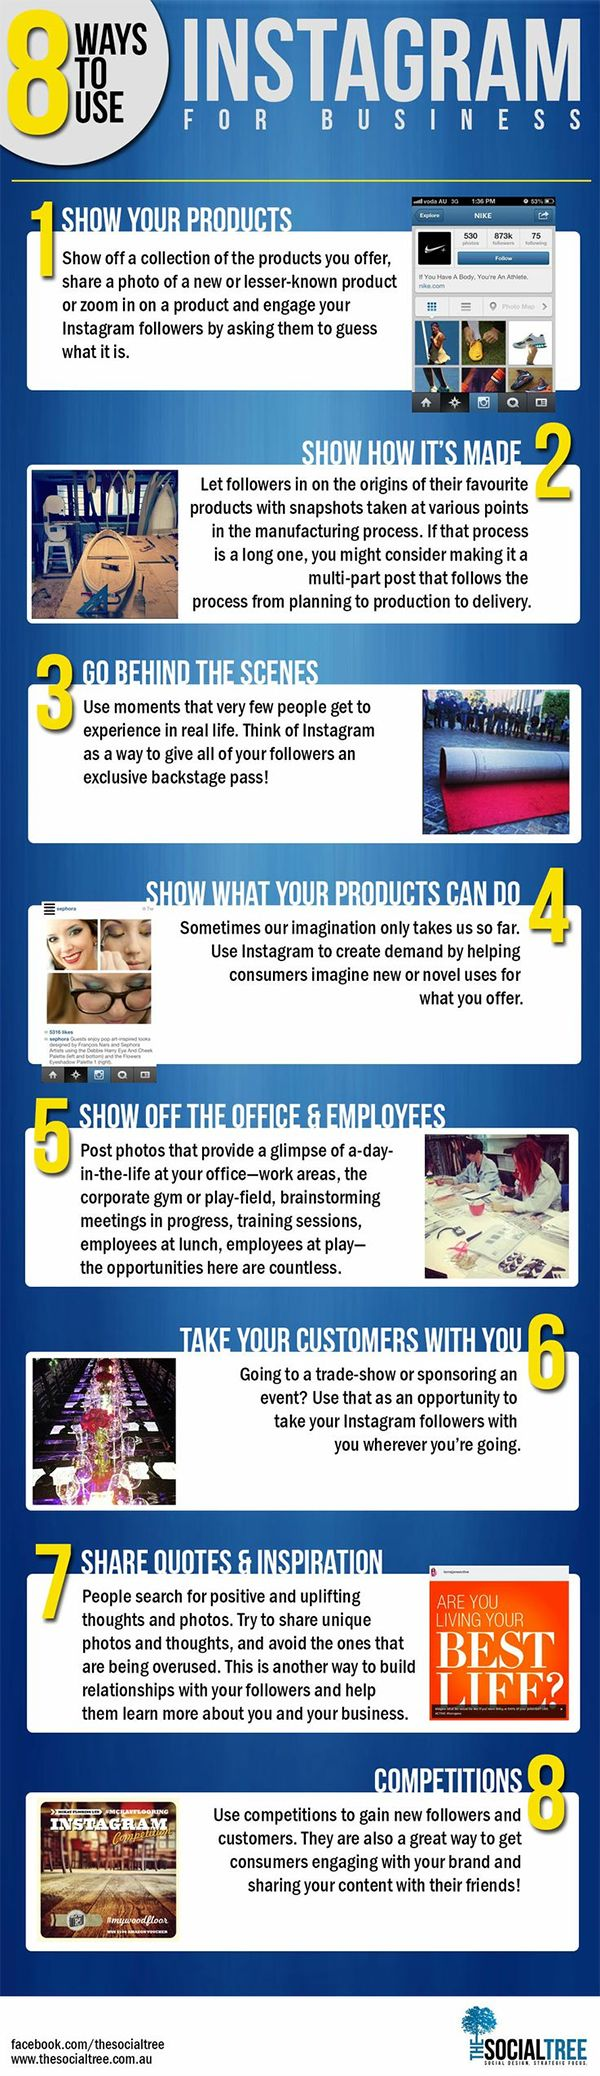 8 Ways to Use Instagram to Market Your Business